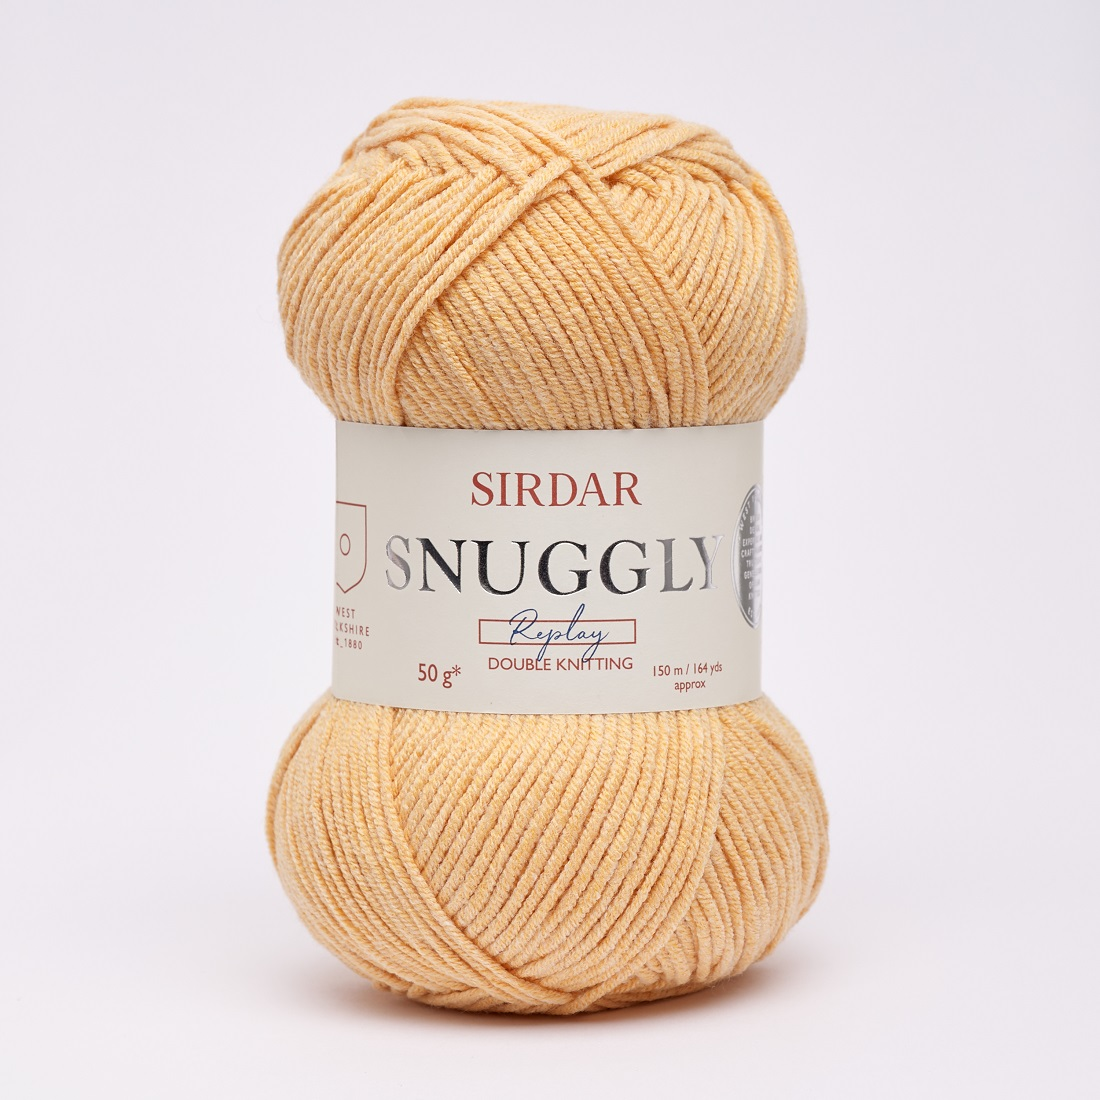 Snuggly Replay Orange Squashed 111